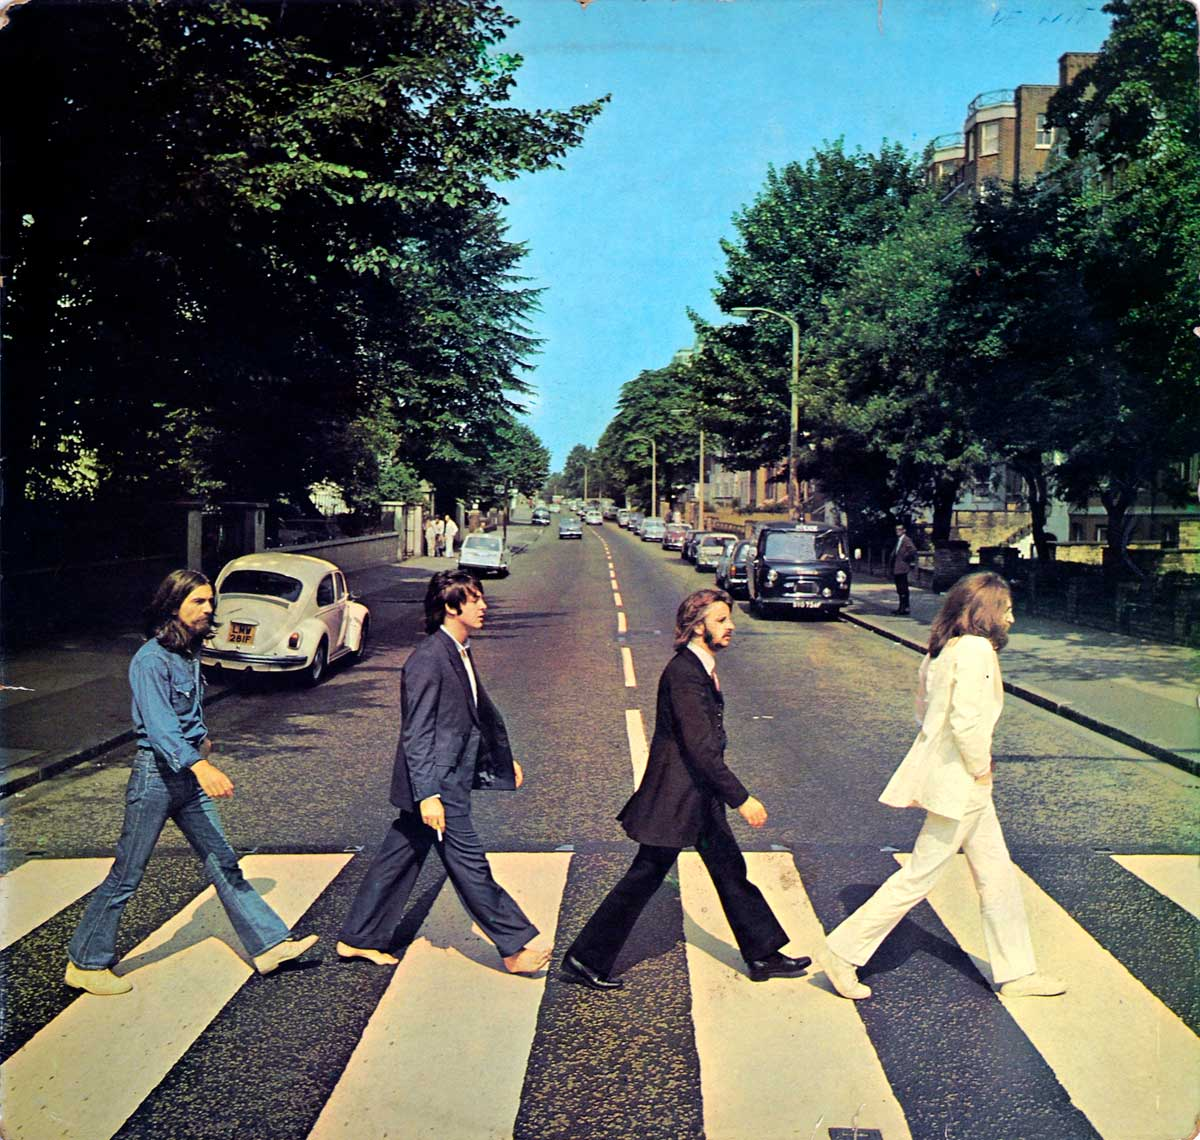 large photo of the album front cover of: Abbey Road by the Beatles